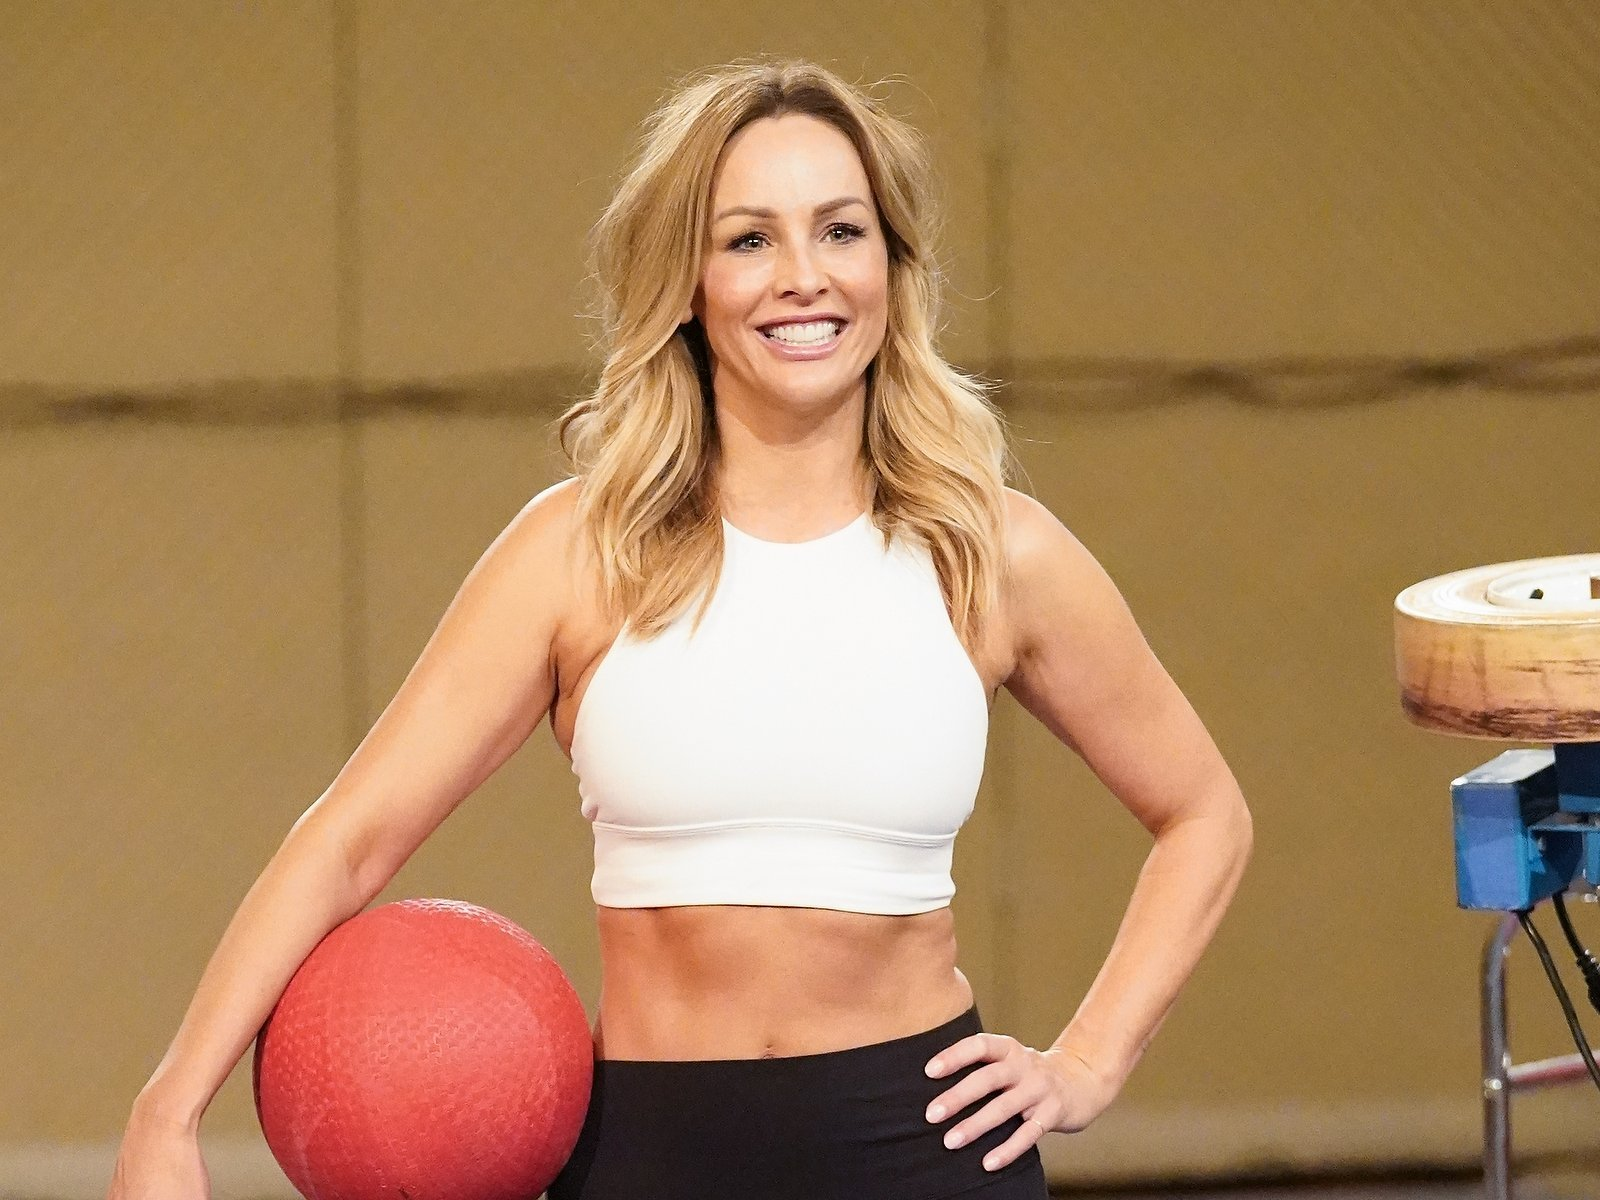 Bachelorette Spoilers: What happens on 'The Bachelorette' star Clare Crawley's 2020 season? Who did Clare pick as her winner and are they still together now? (SPOILERS)